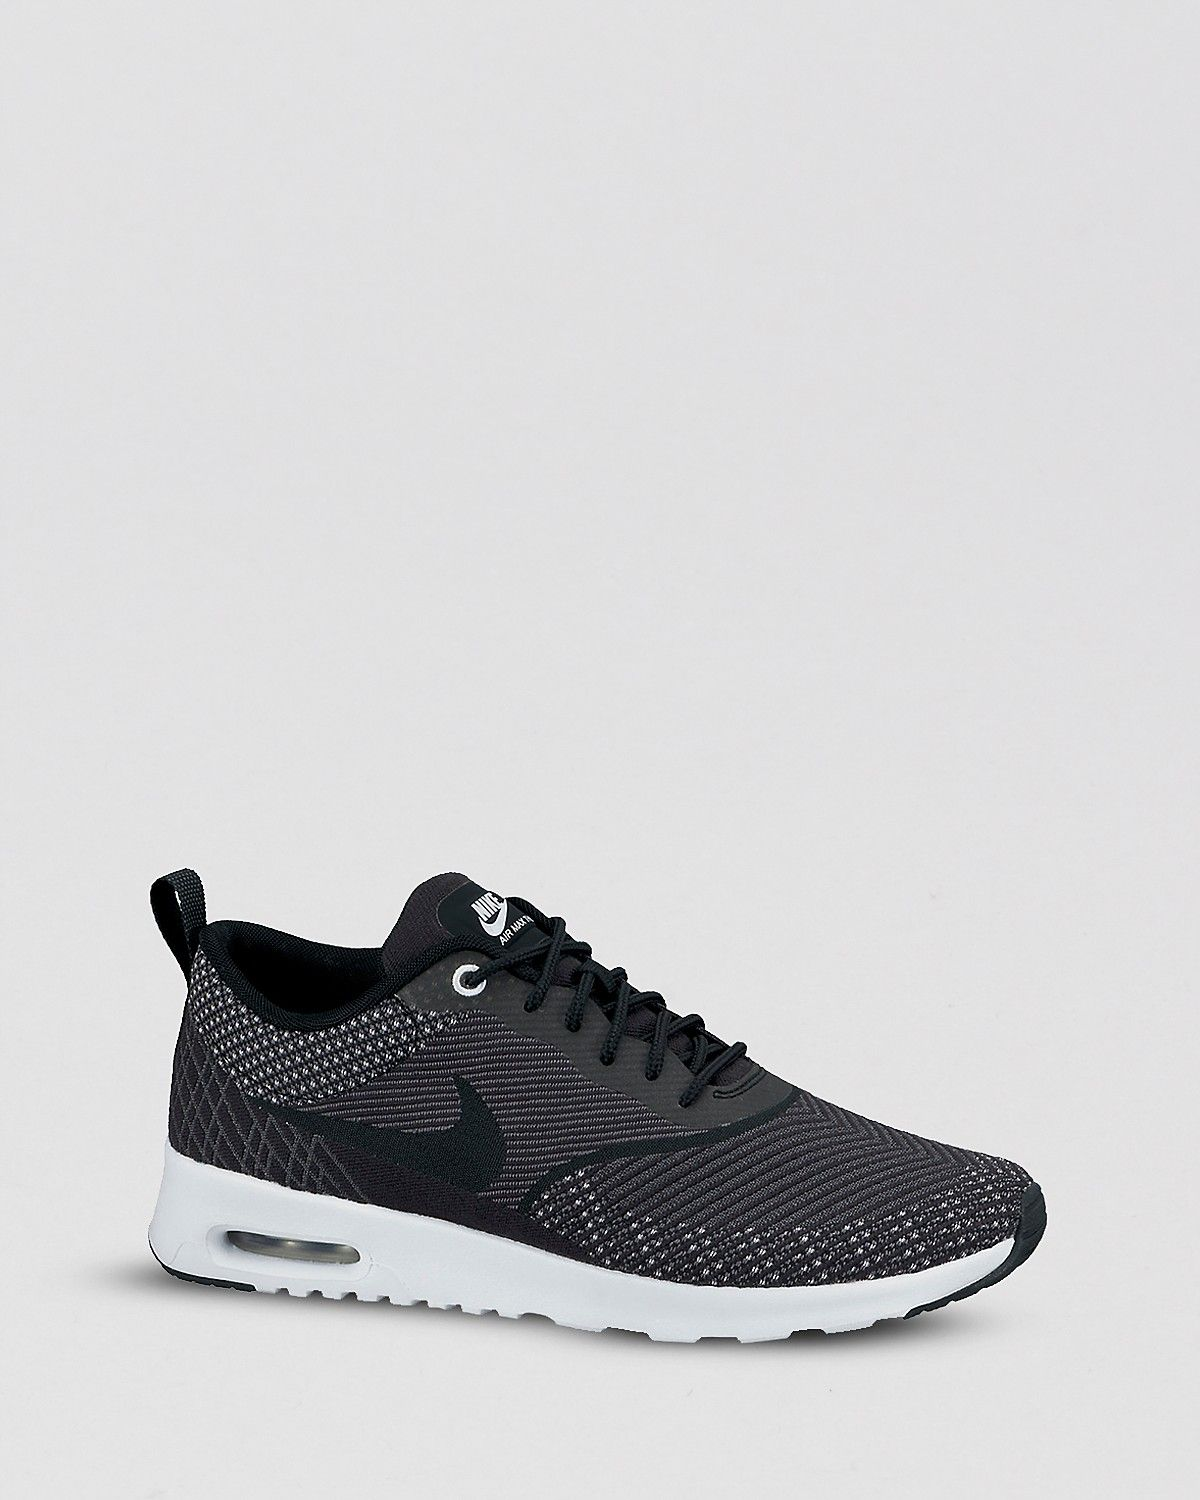 classic fit f7a19 75a0e Nike Lace Up Sneakers - Women s Air Max Thea Jacquard   Bloomingdale s